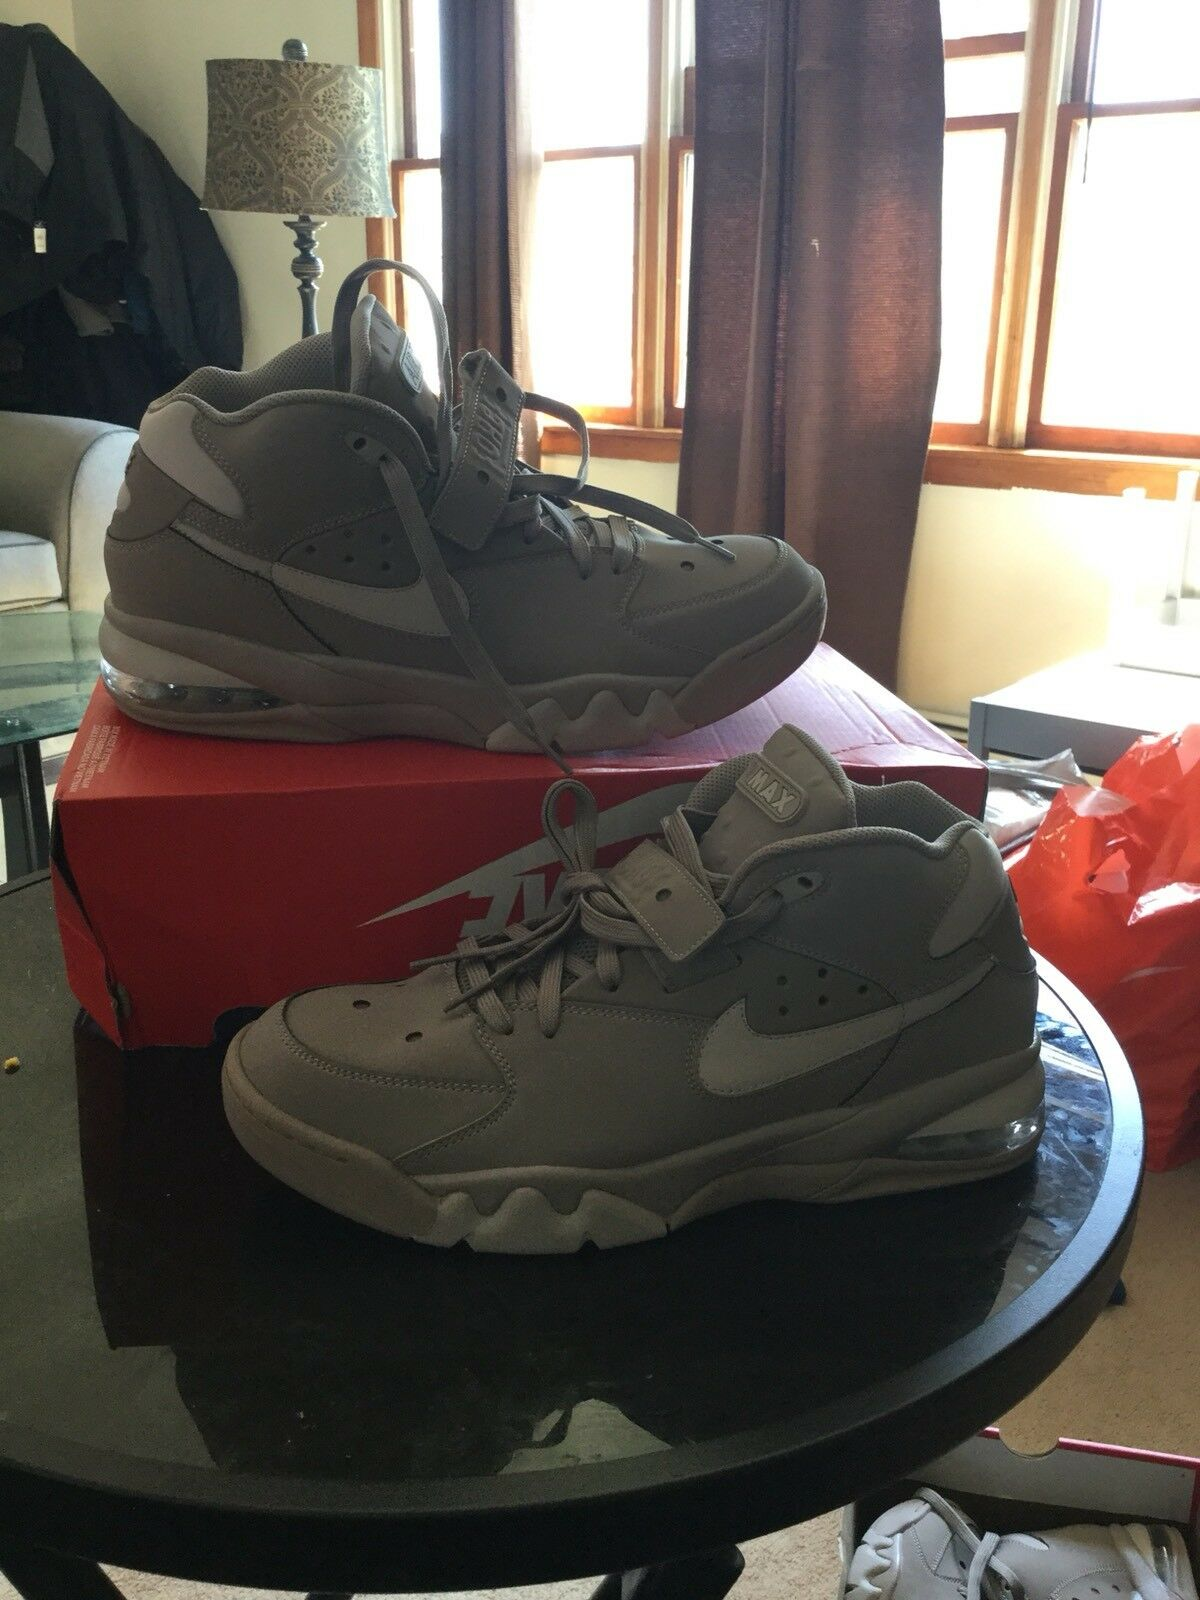 New Air Force max Men fashion sneakers size 9 color stone